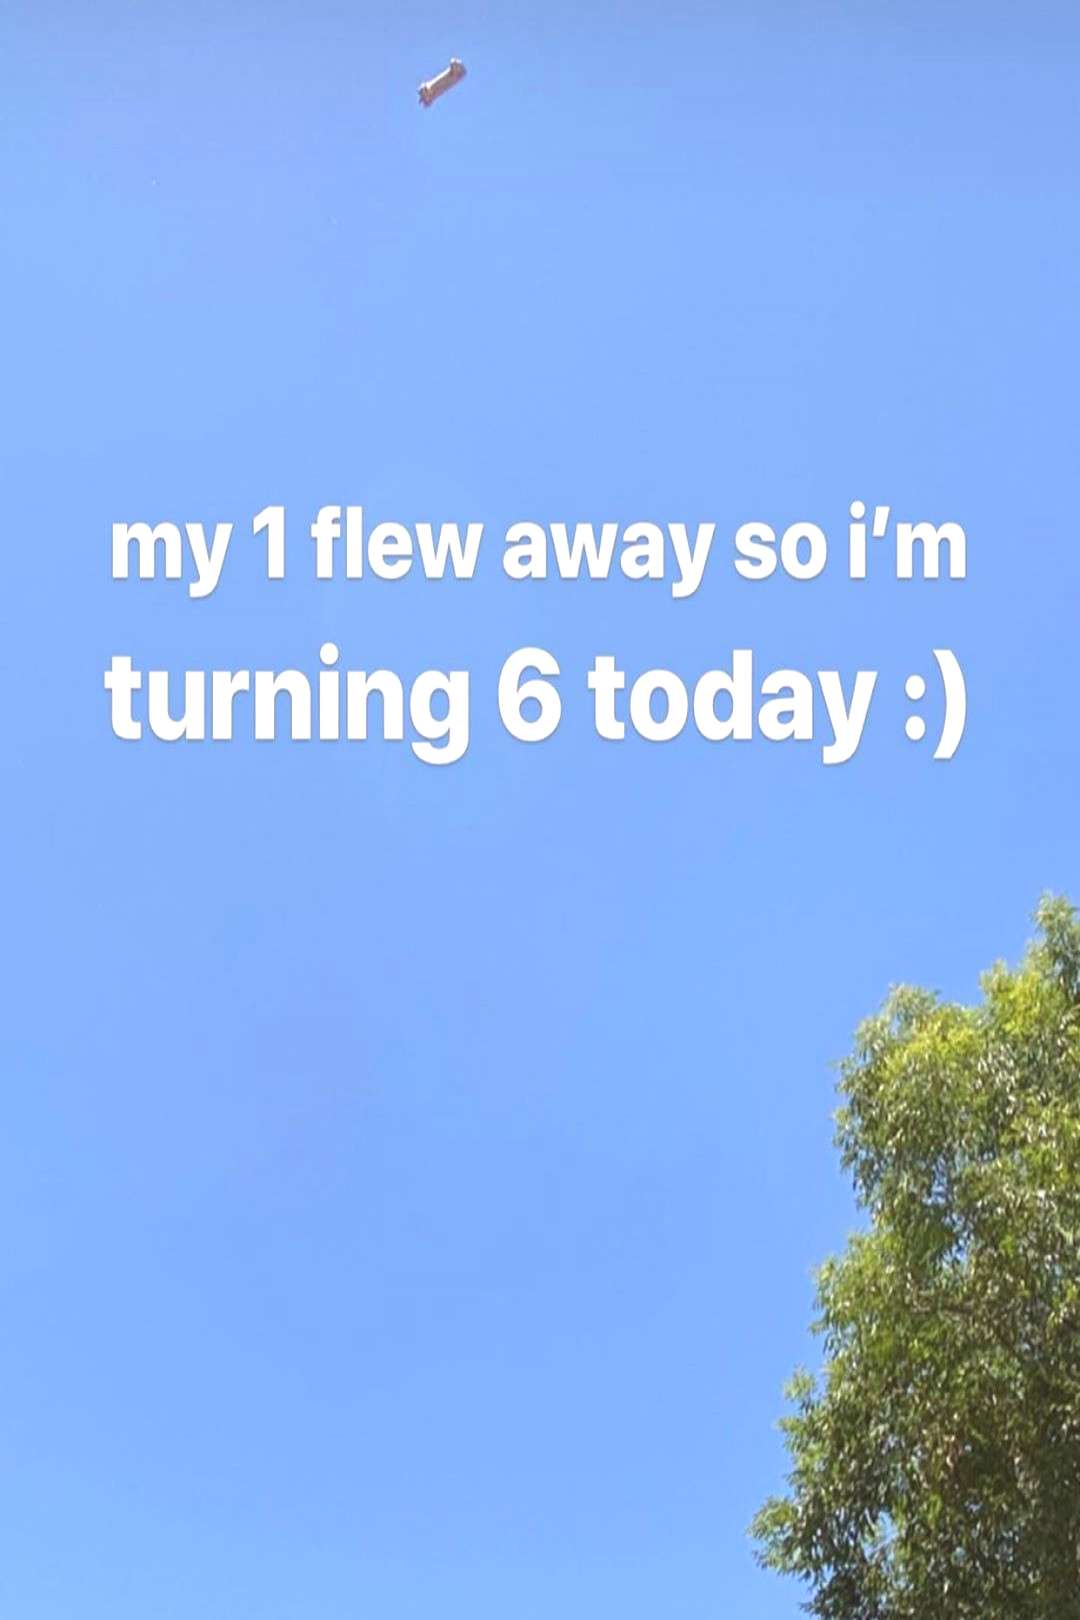 on June 04 2020 sky text that says my 1 flew away so im turning 6